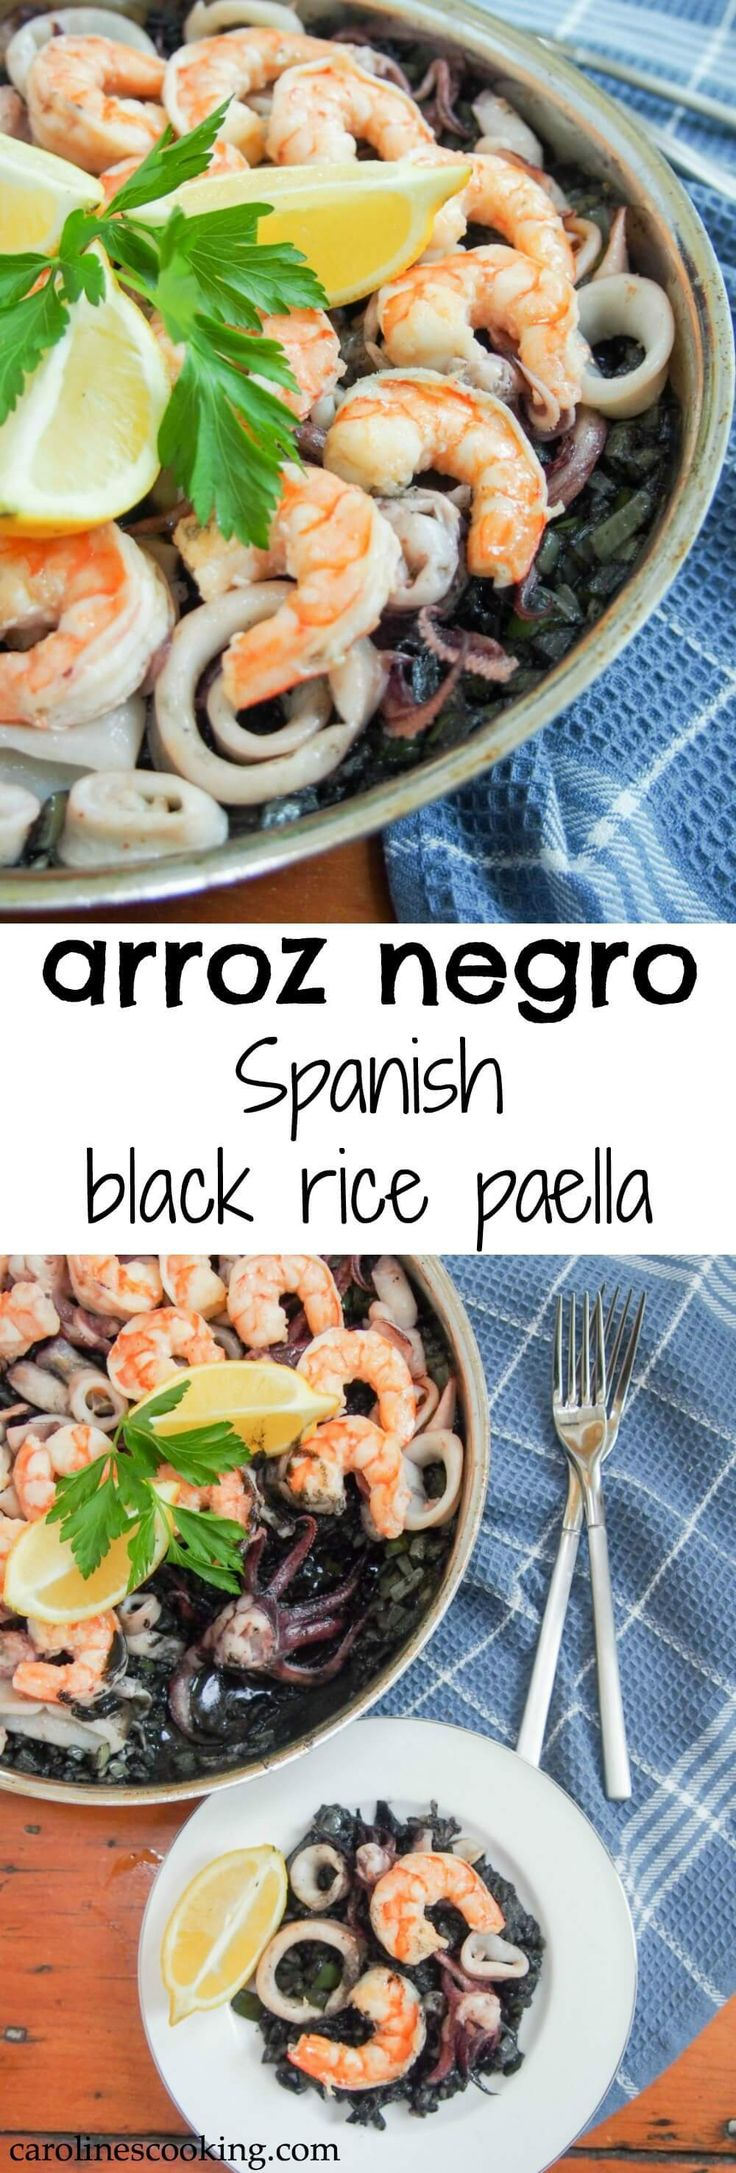 Spanish black rice paella (arroz nego/arròs negre) is a Spanish classic. Tinted with squid ink, packed with seafood, it's delicately flavored and delicious.